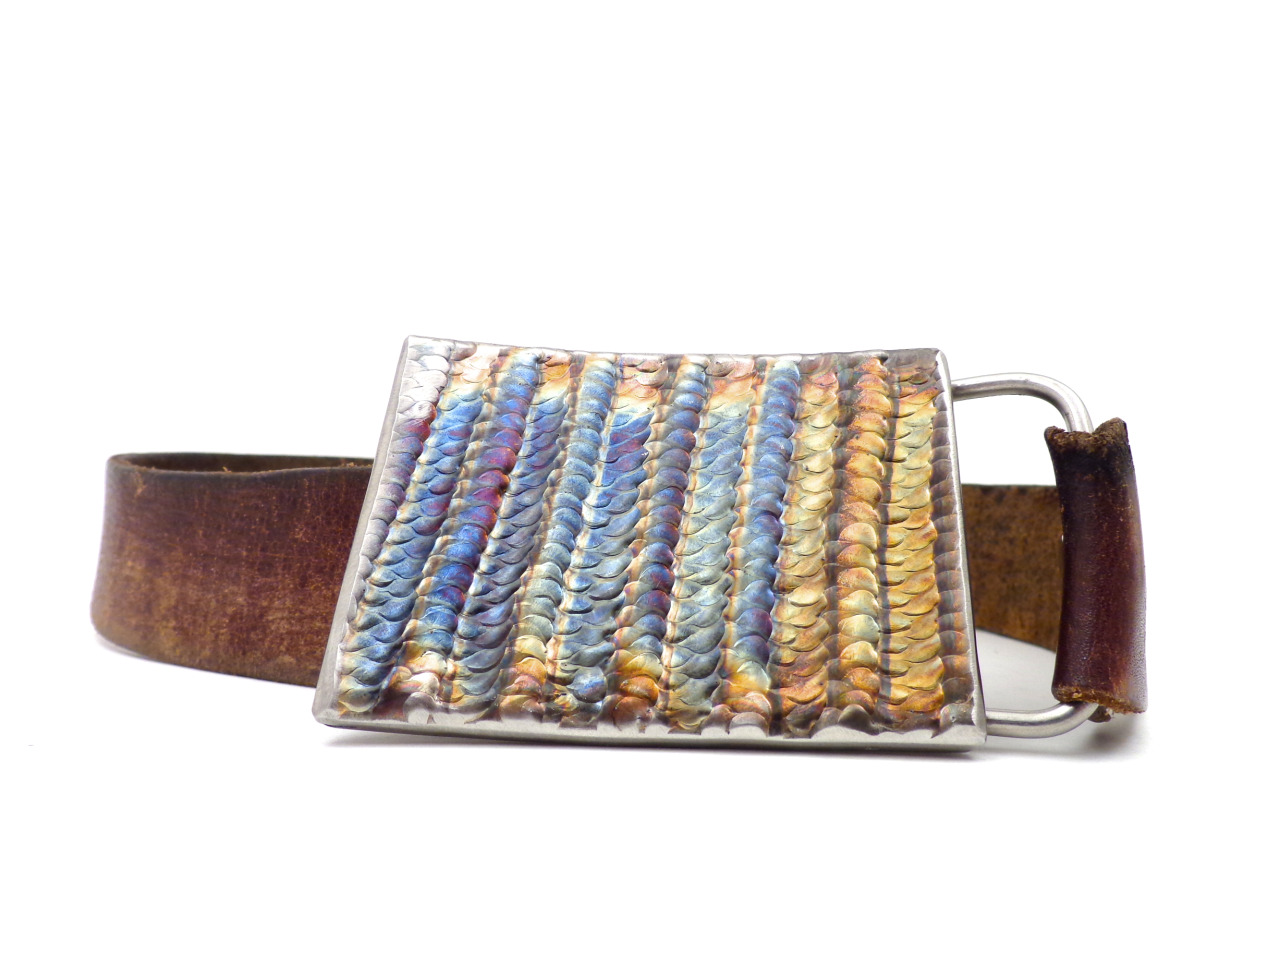 If you missed out on the Stringer stainless buckle, check out the Weaved stainless buckle! I made two, there are two listings…here's one:https://www.etsy.com/listing/124738555/weaved-welds-stainless-steel-belt-buckle